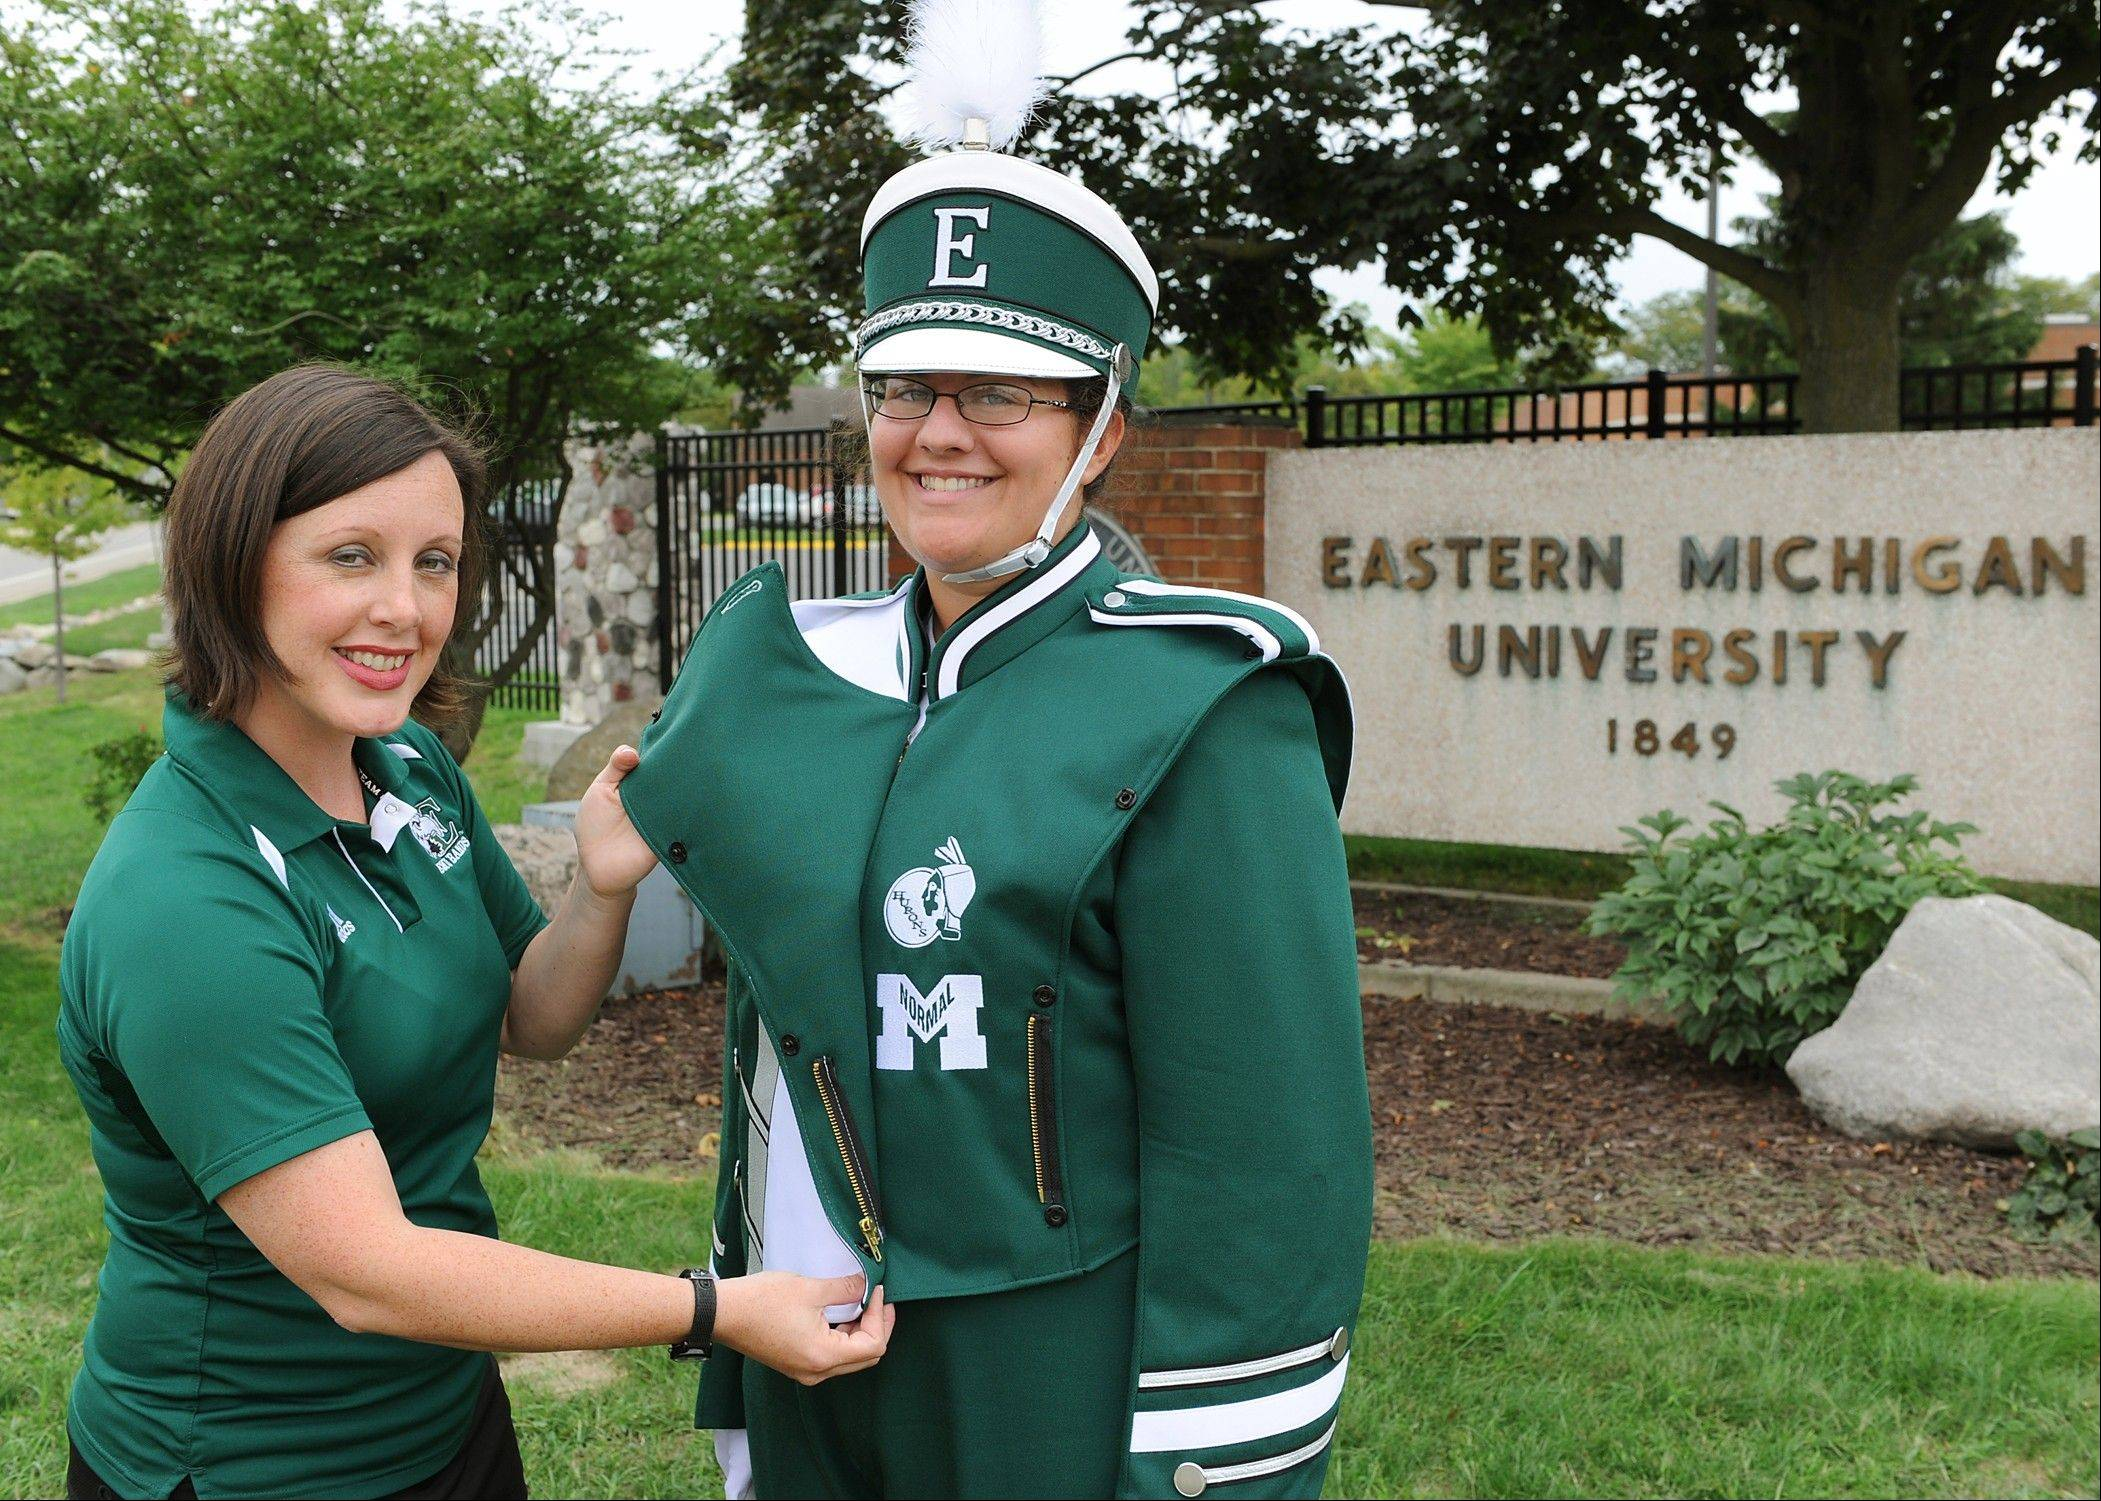 Marching band director Amy Knopps, left, shows off the Huron and Normalite logos embedded in a new marching band uniform worn by uniform manager Maria Eloff.